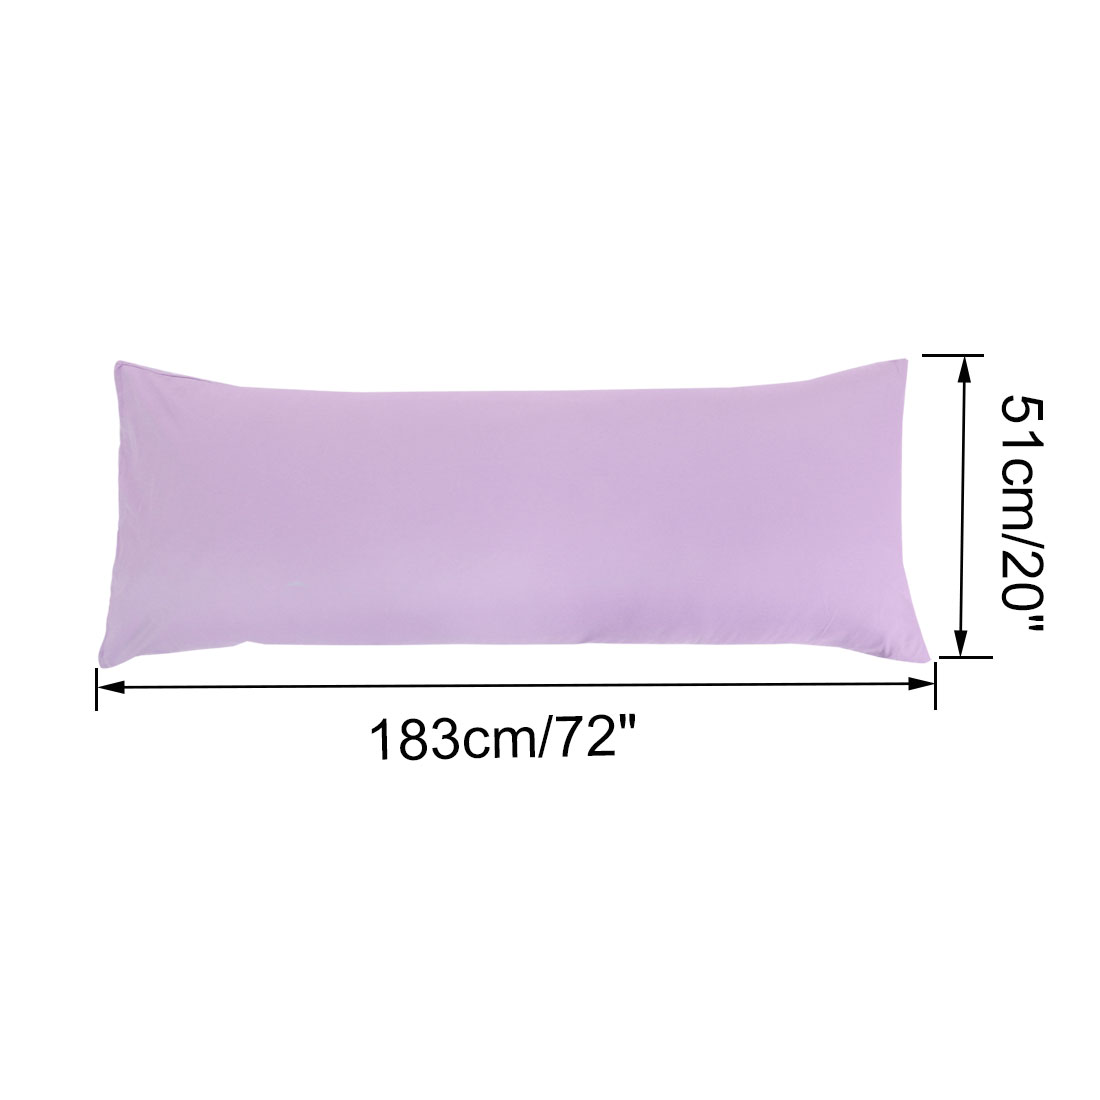 "Set of 2 Body Pillow Cover Long Soft Pillow Case for Body Pillows Violet 20""x72"" - image 4 of 7"